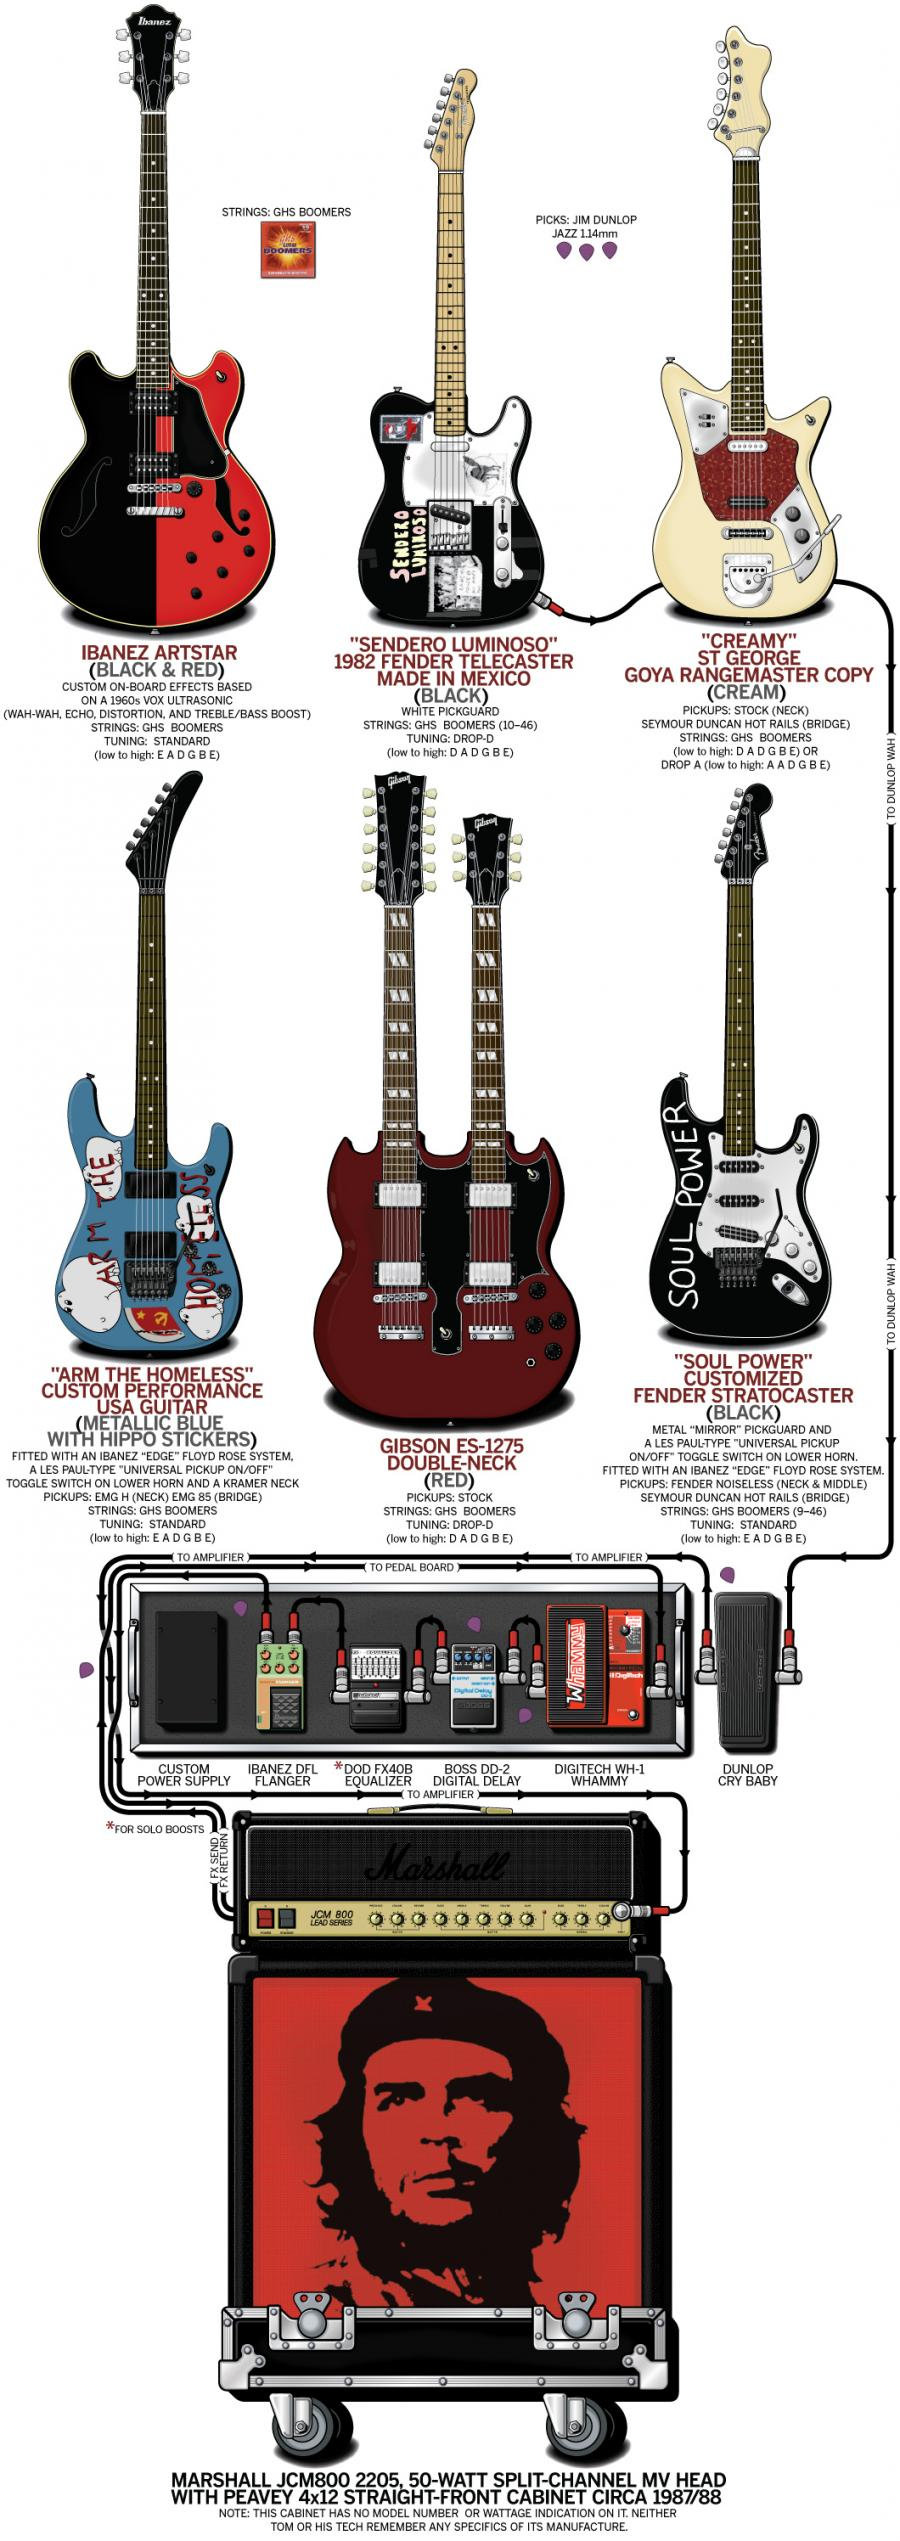 Original Guitar Geek Rig Diagrams Chalk String Tuning Diagram Tom Morello Rage Against The Machine 1998